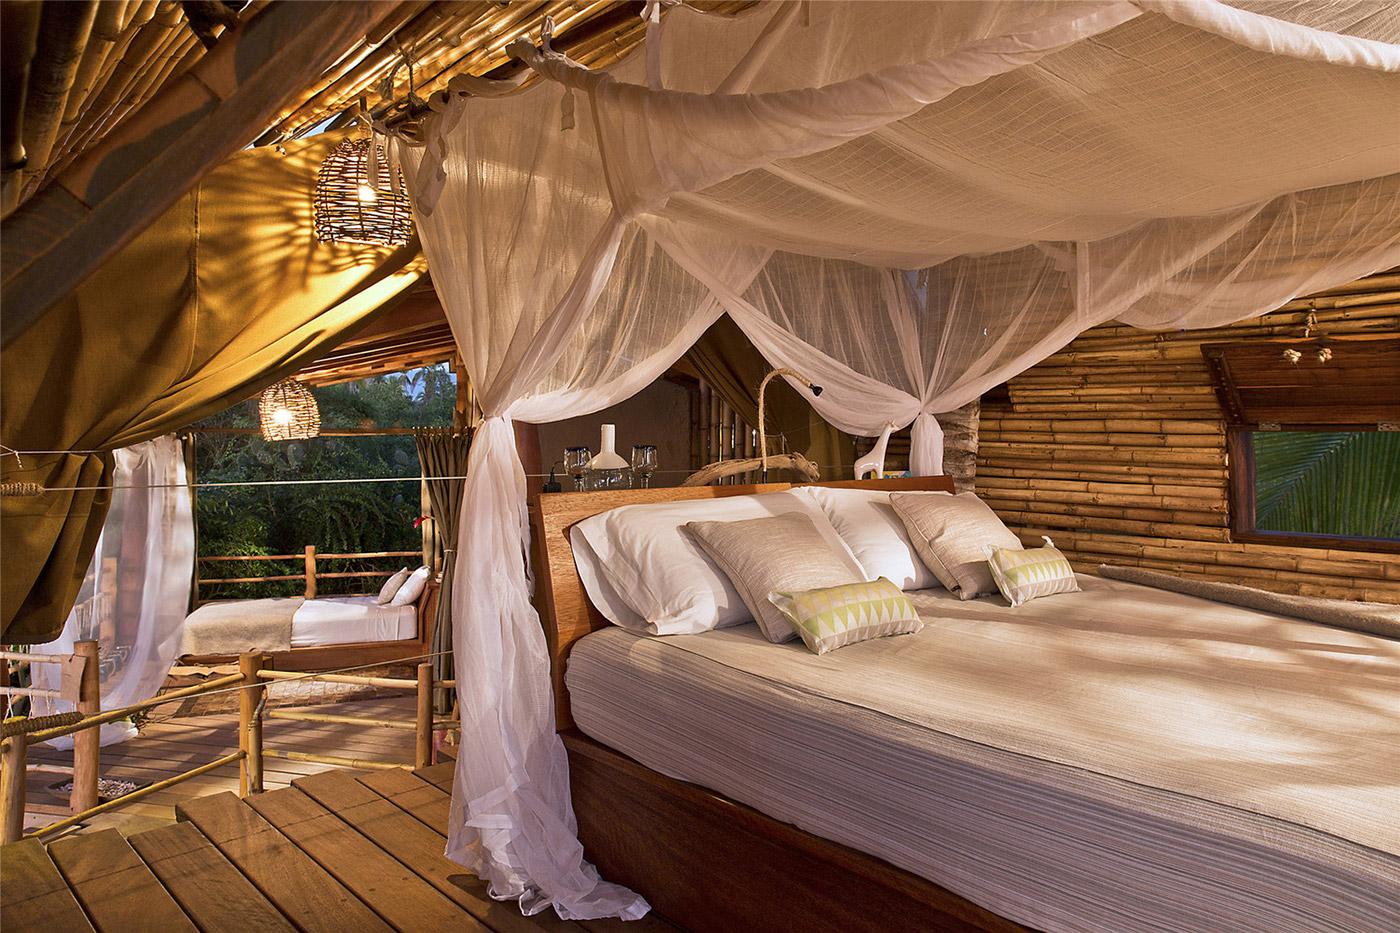 Canopy bed in a bamboo cabin